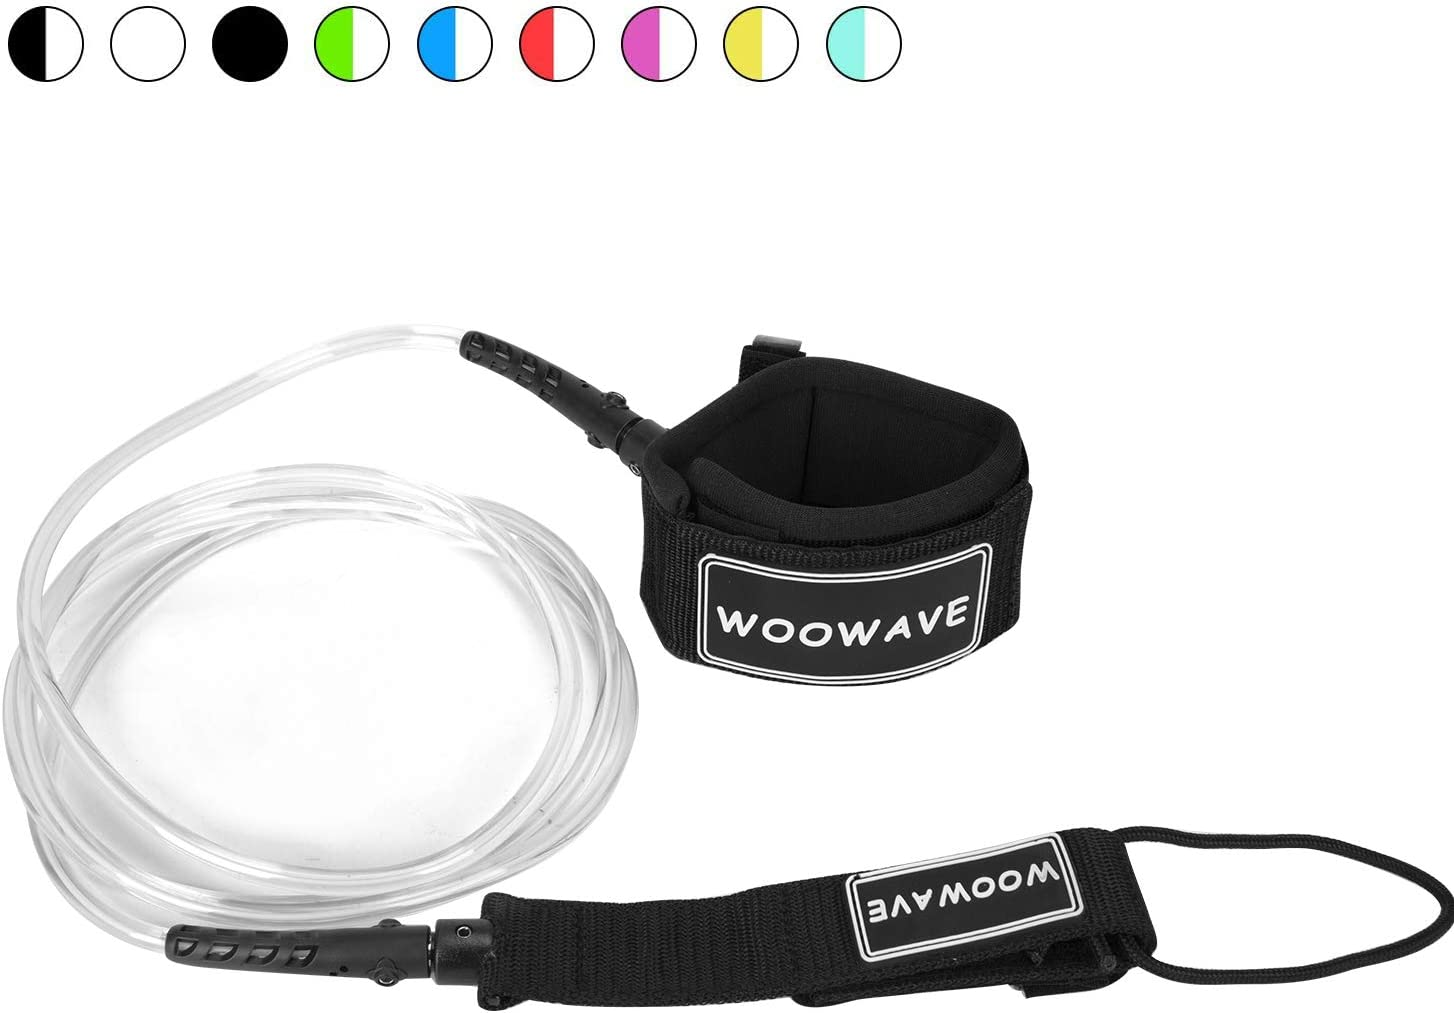 WOOWAVE Surfboard Leash Premium Surf Leash SUP Leg Rope Straight 6/7/8/9 feet for All Types of Surfboards